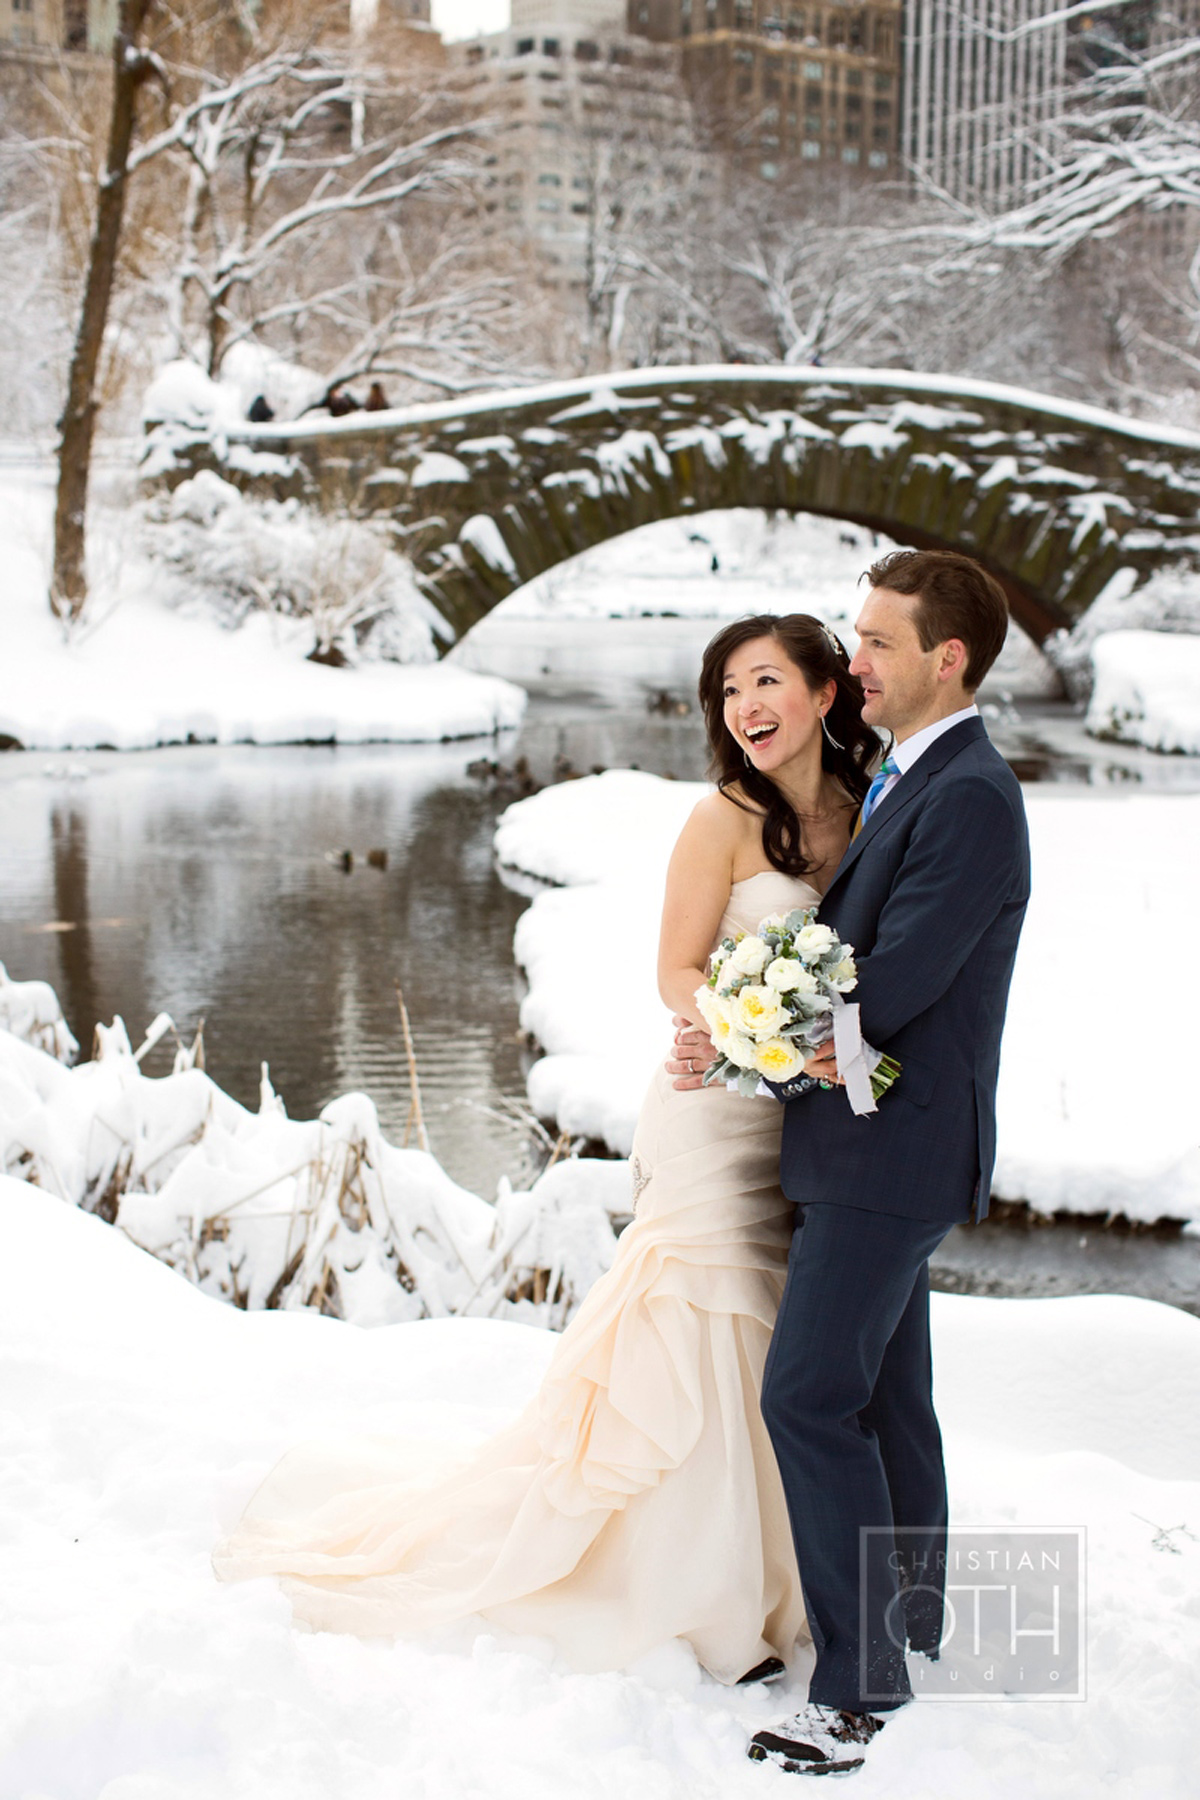 NEW_YORK_WINTER_WEDDING_CHRISTIAN_OTH_10